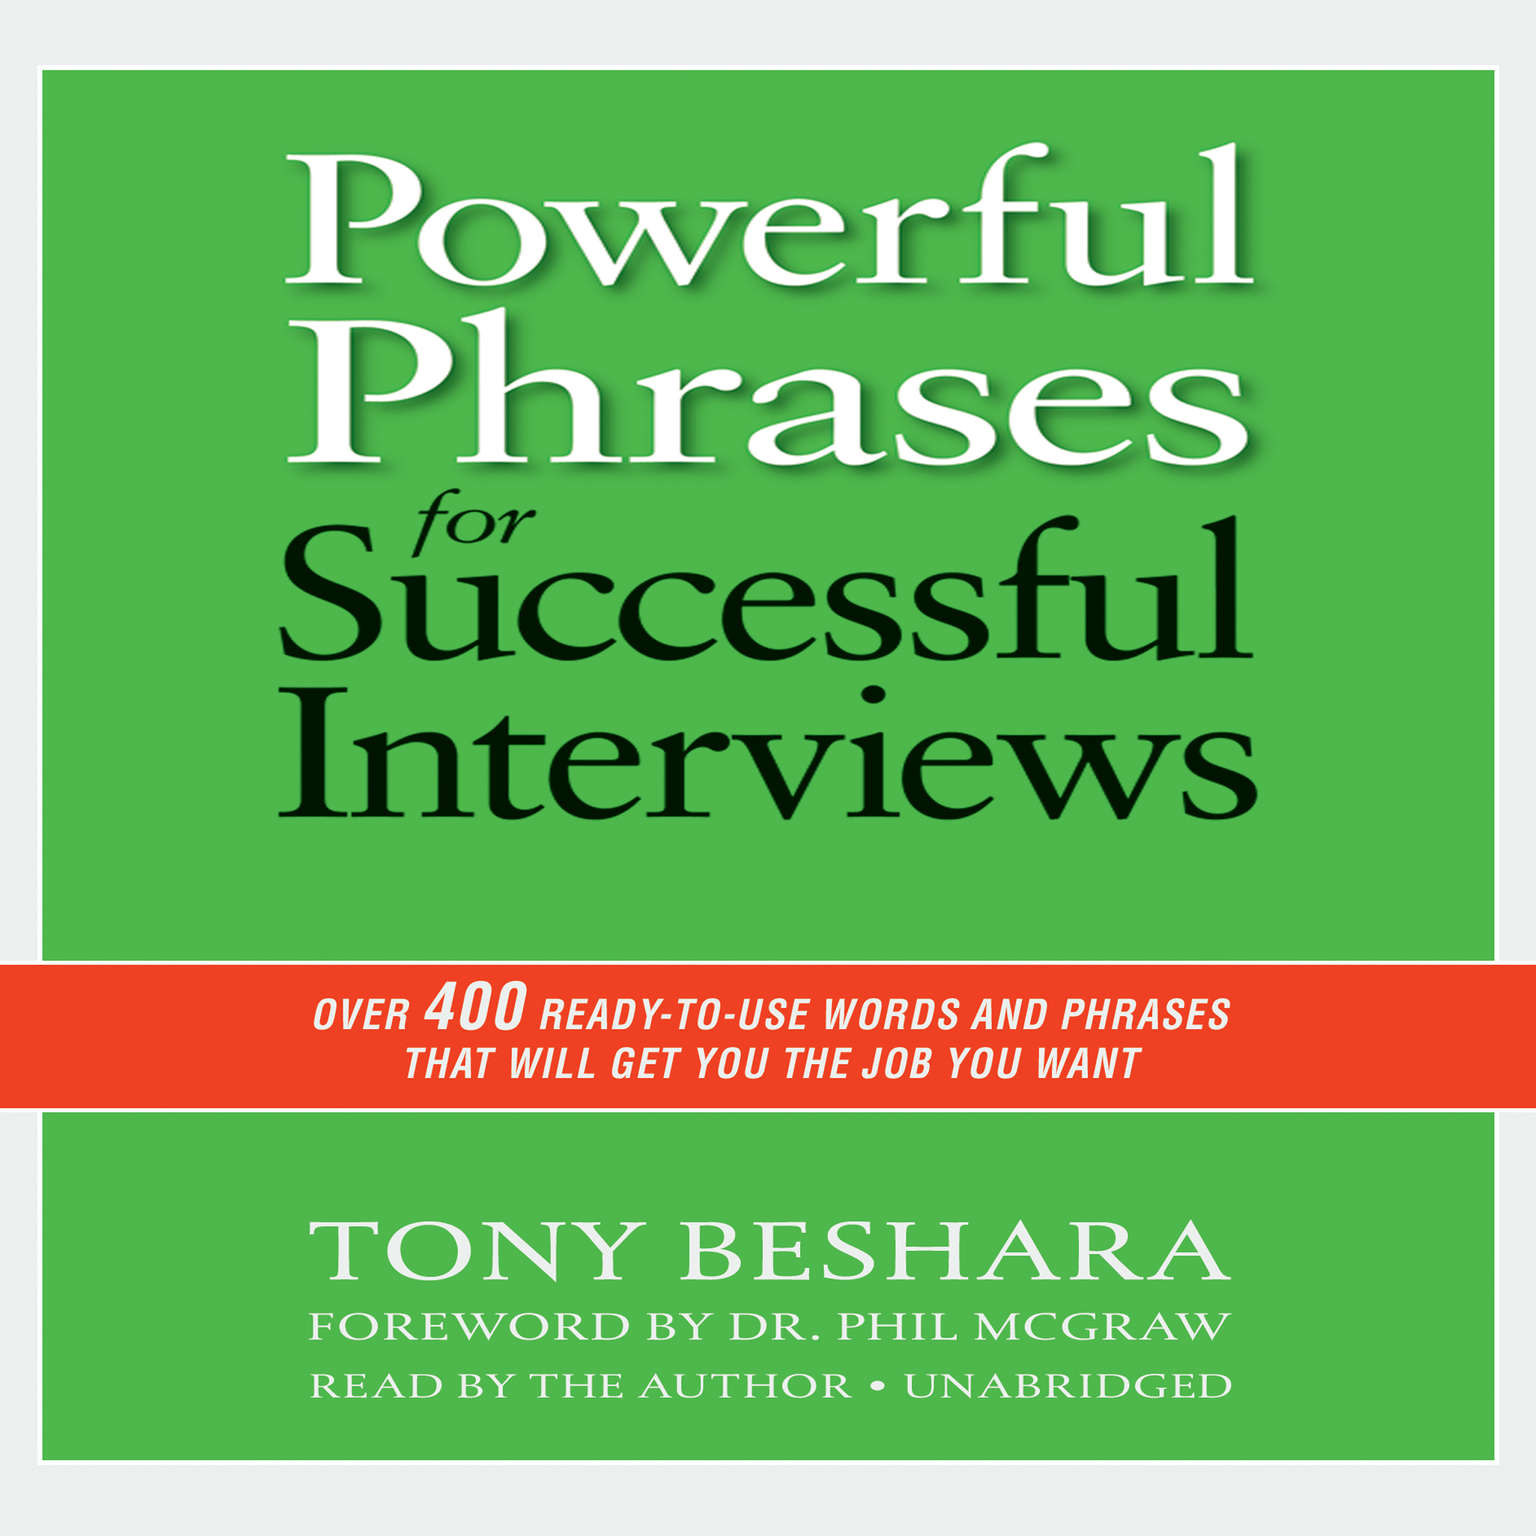 hear powerful phrases for successful interviews audiobook by tony extended audio sample powerful phrases for successful interviews over 400 ready to use words and phrases